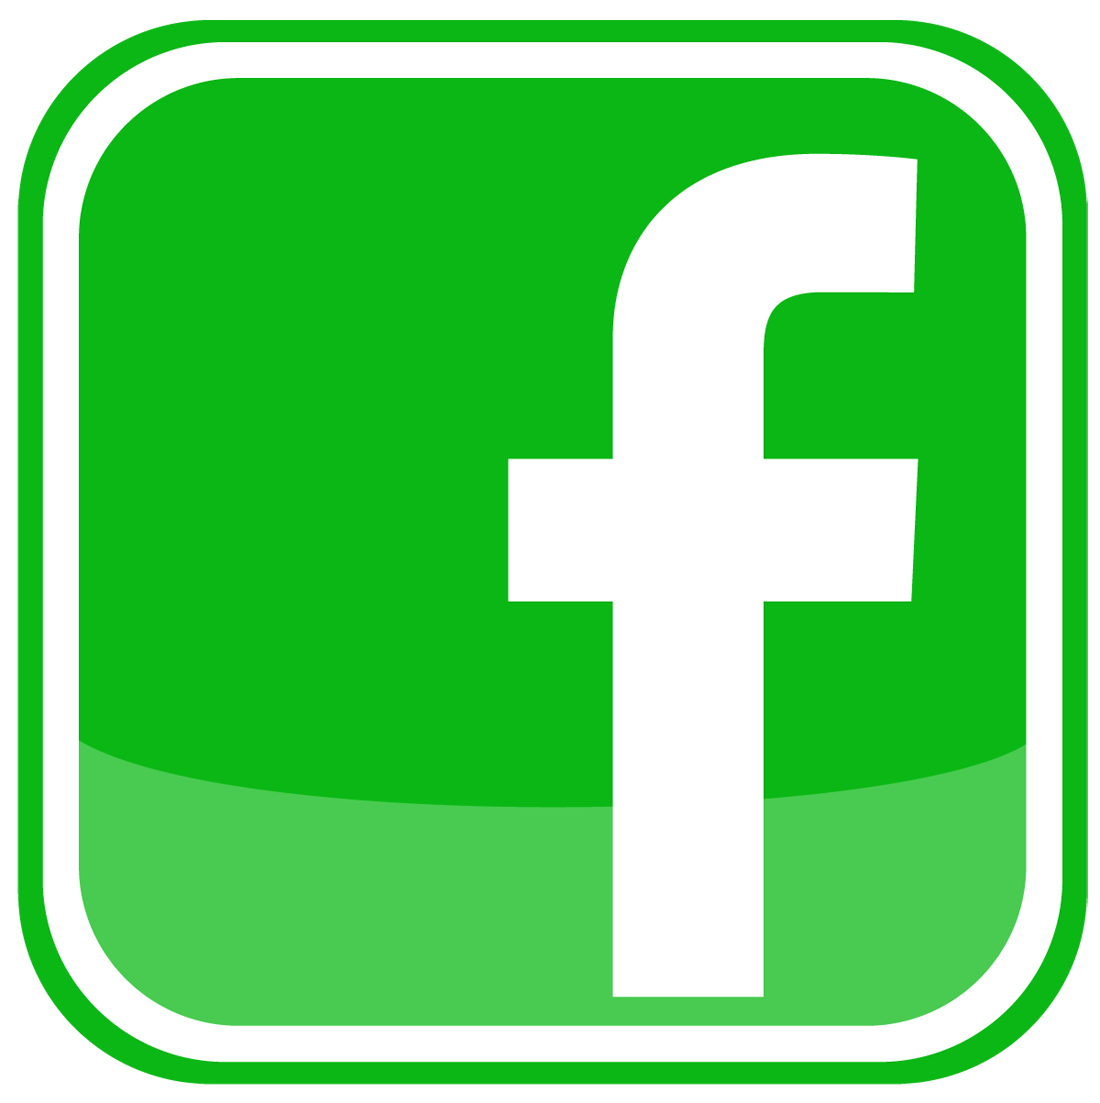 Facebook Icon logo png Green